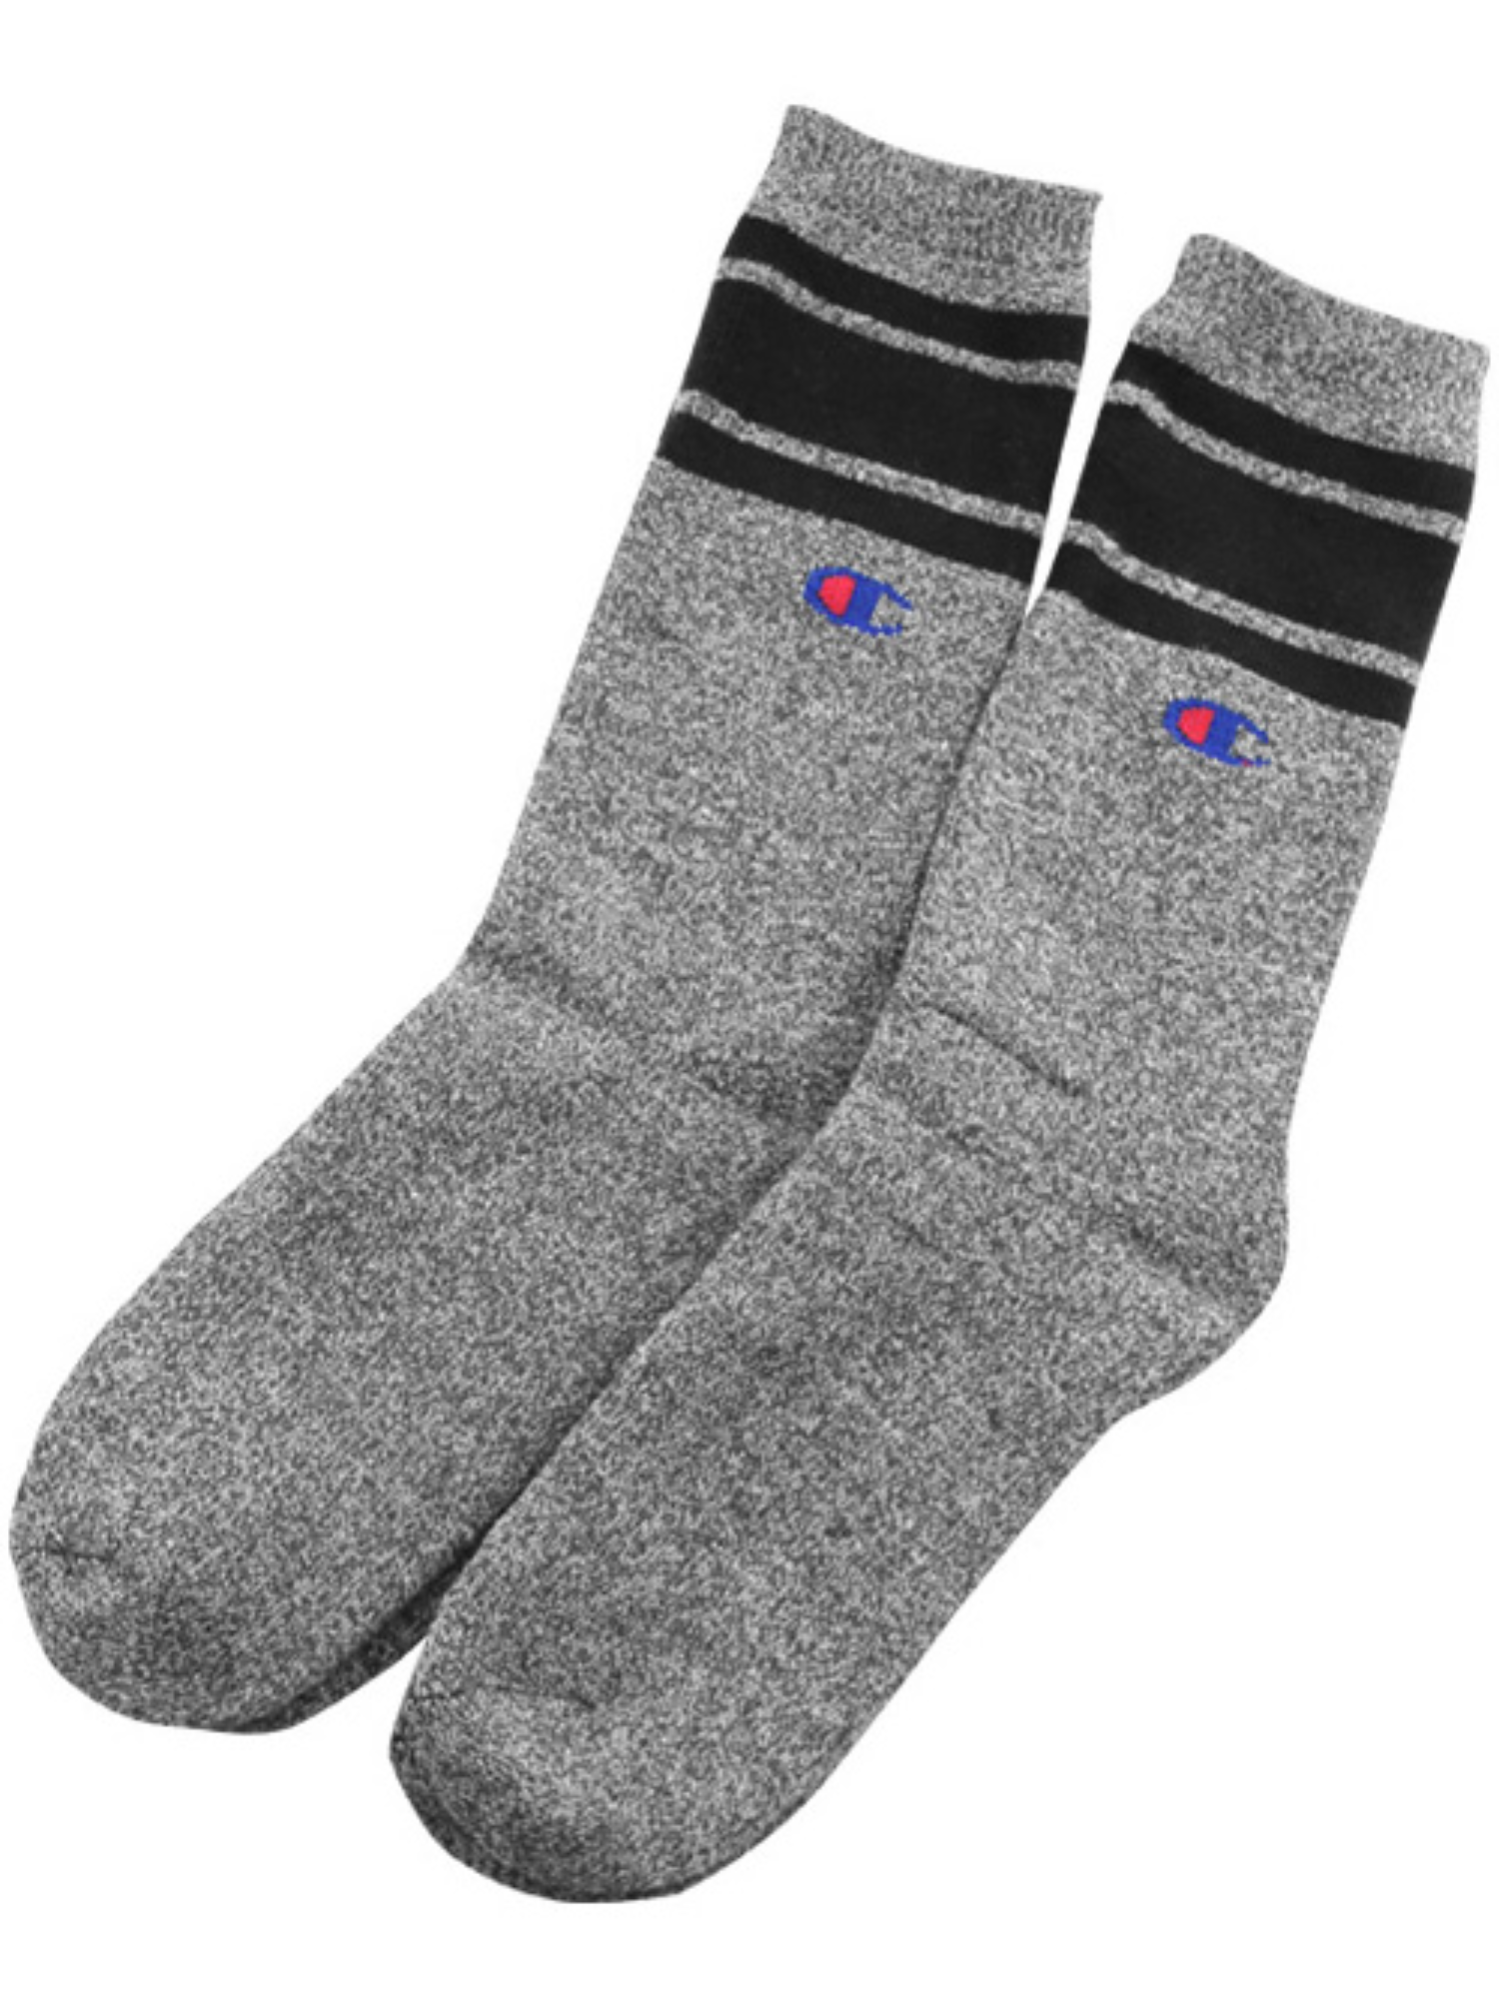 CHAMPION 2 Pack Long Length Socks 2 Color CMSBG003